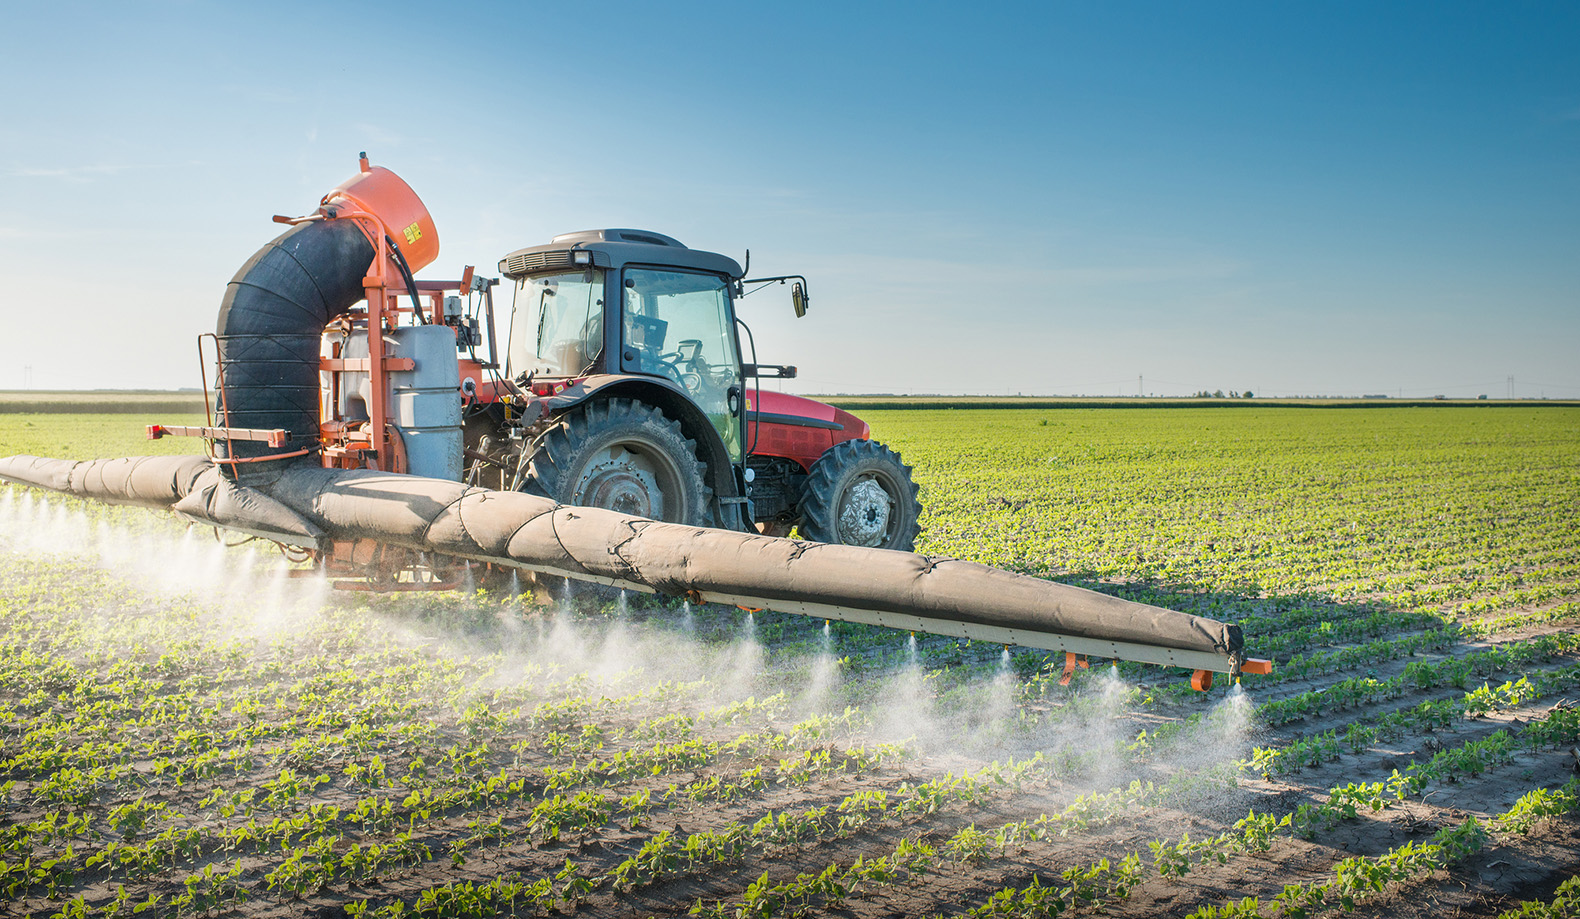 Unreleased internal FDA emails show glyphosate weedkiller residue in almost every food tested